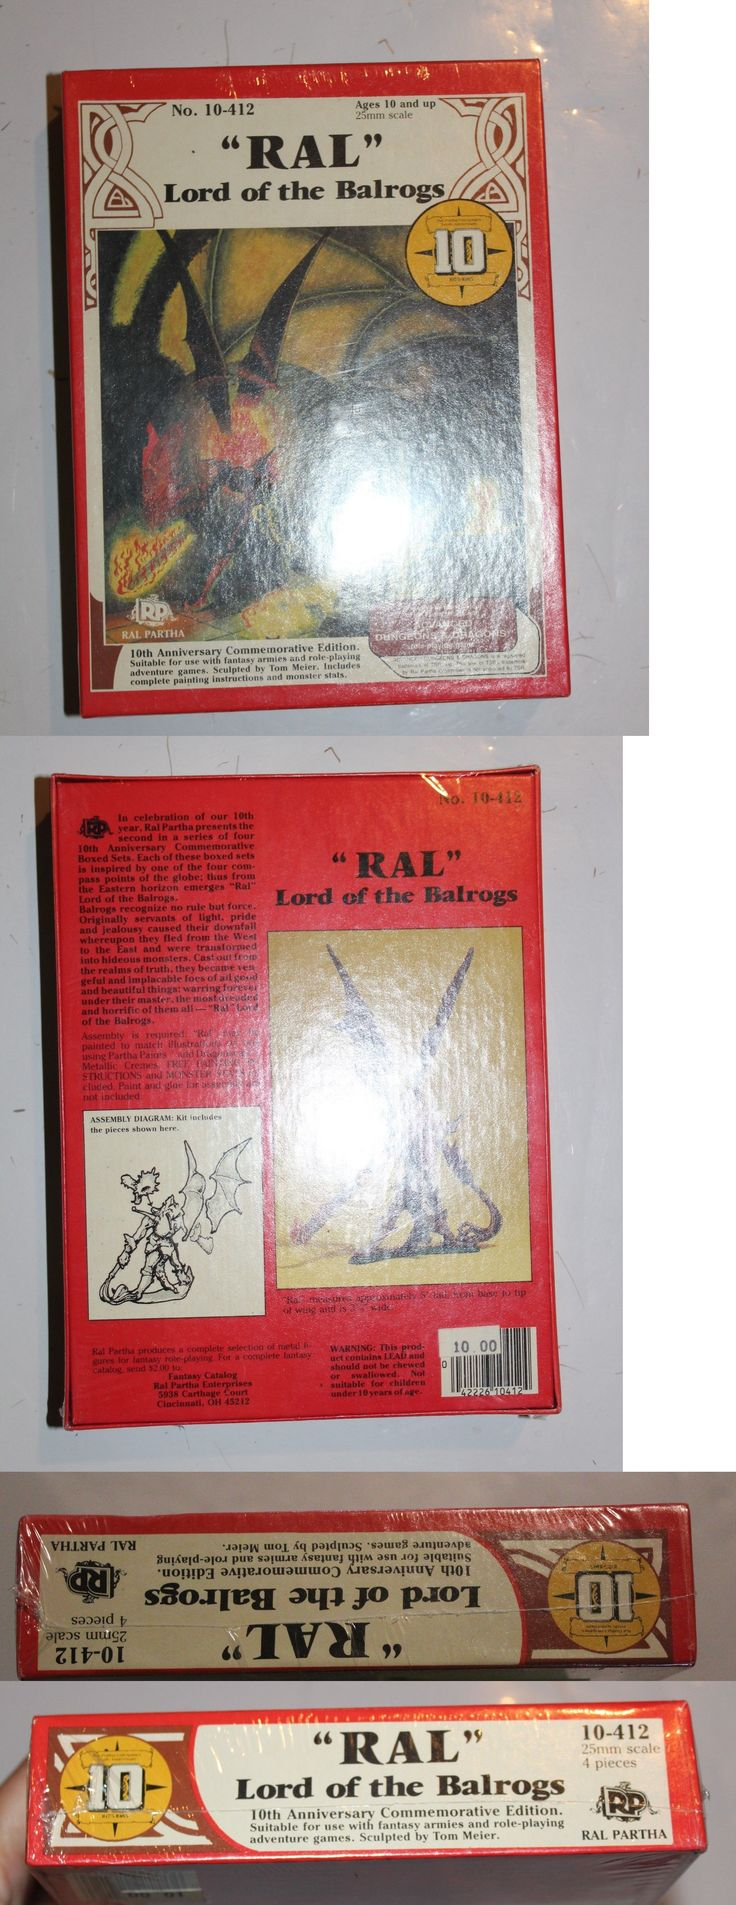 Ral Partha 16489: Ral Lord Of The Balrogs - Ral Partha 10-412 Sealed Adandd Dungeons And Dragons -> BUY IT NOW ONLY: $69.95 on eBay!